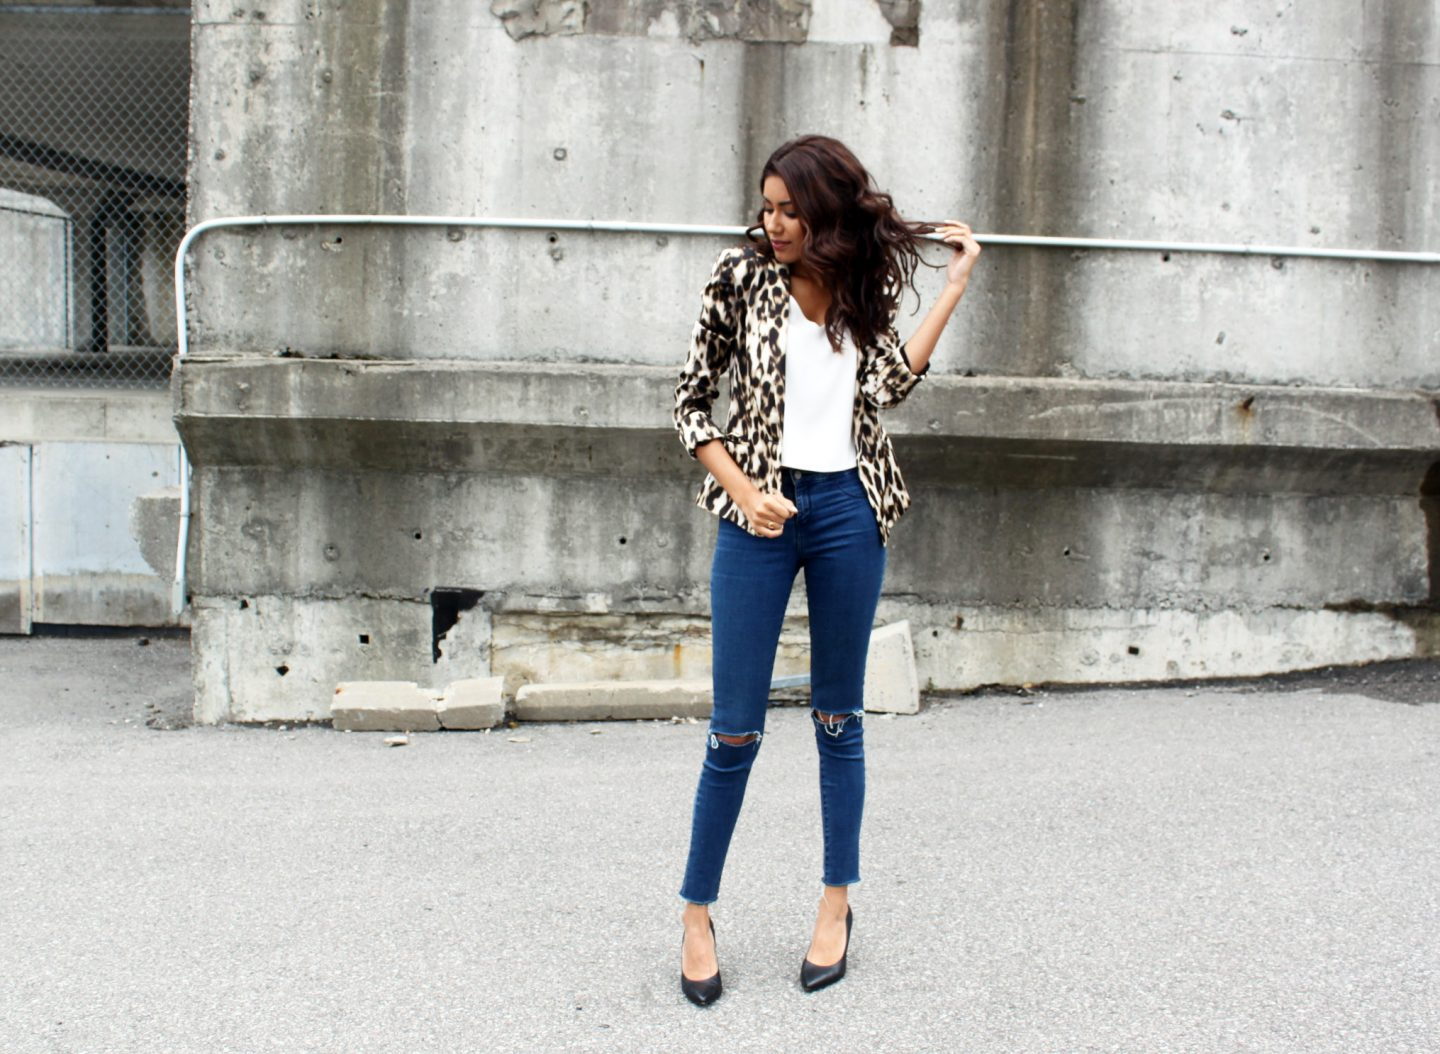 HOW TO WEAR LEOPARD